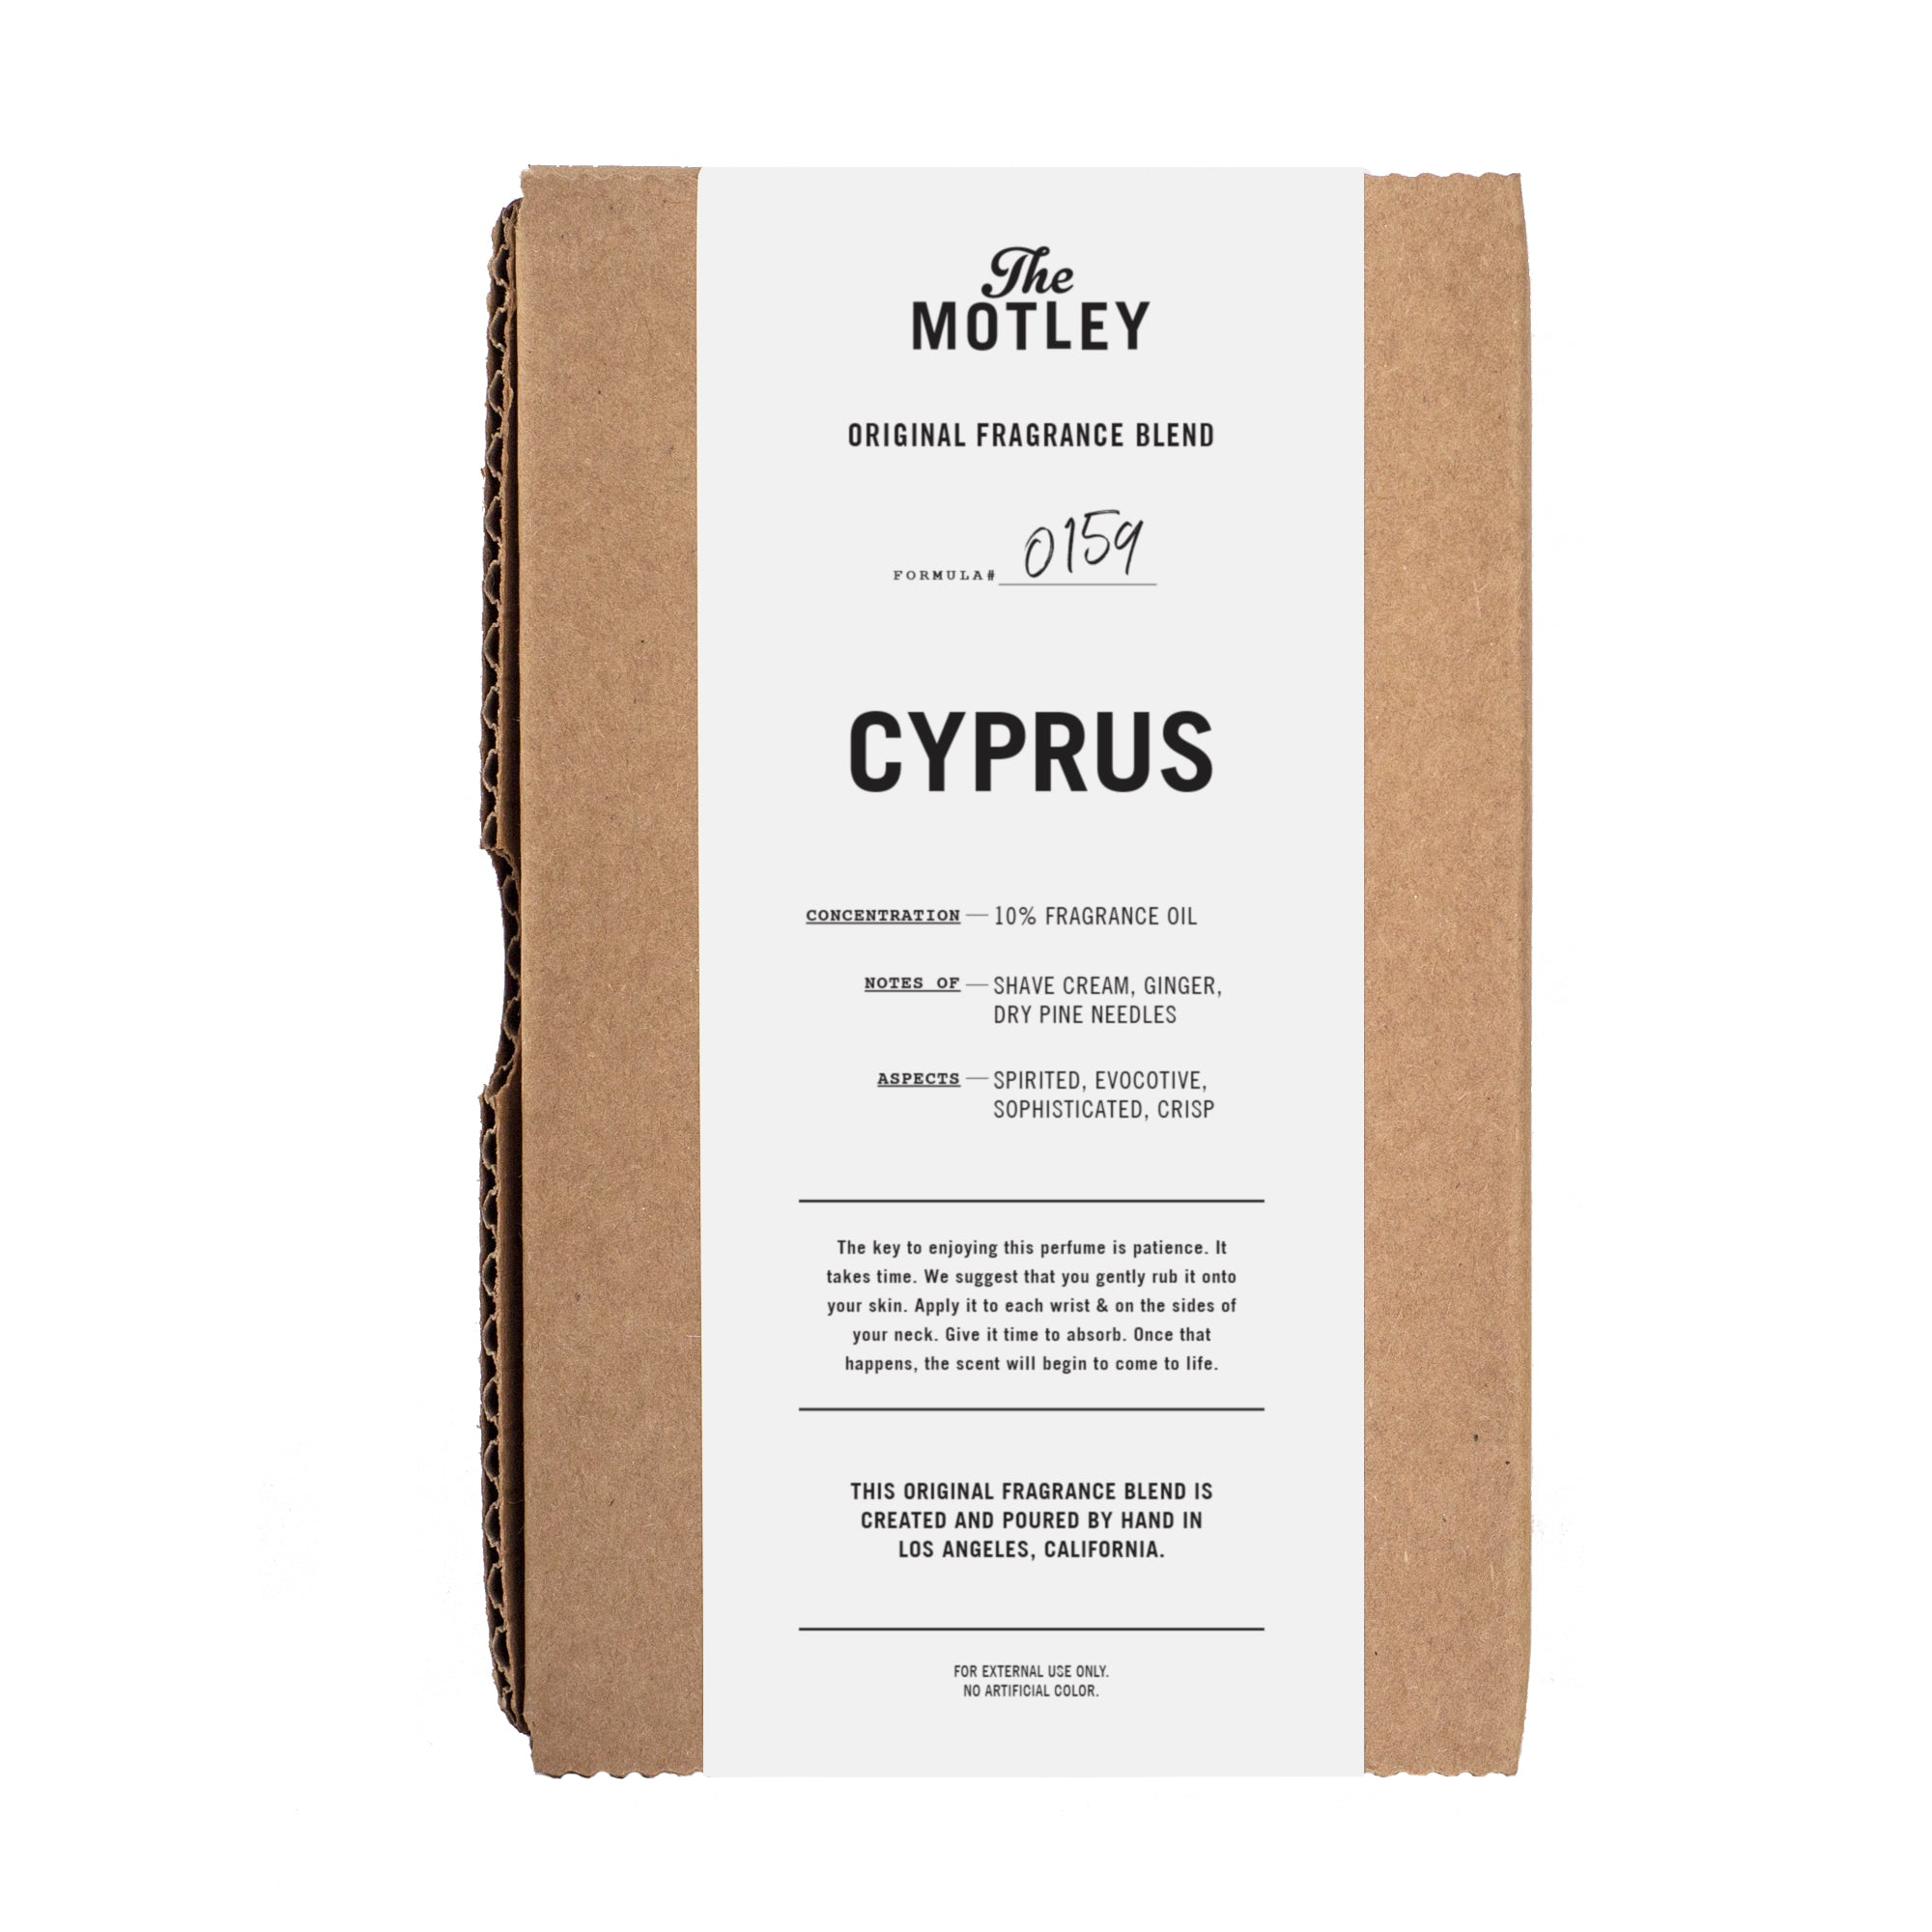 The Motley Cyprus Cologne - The Motley